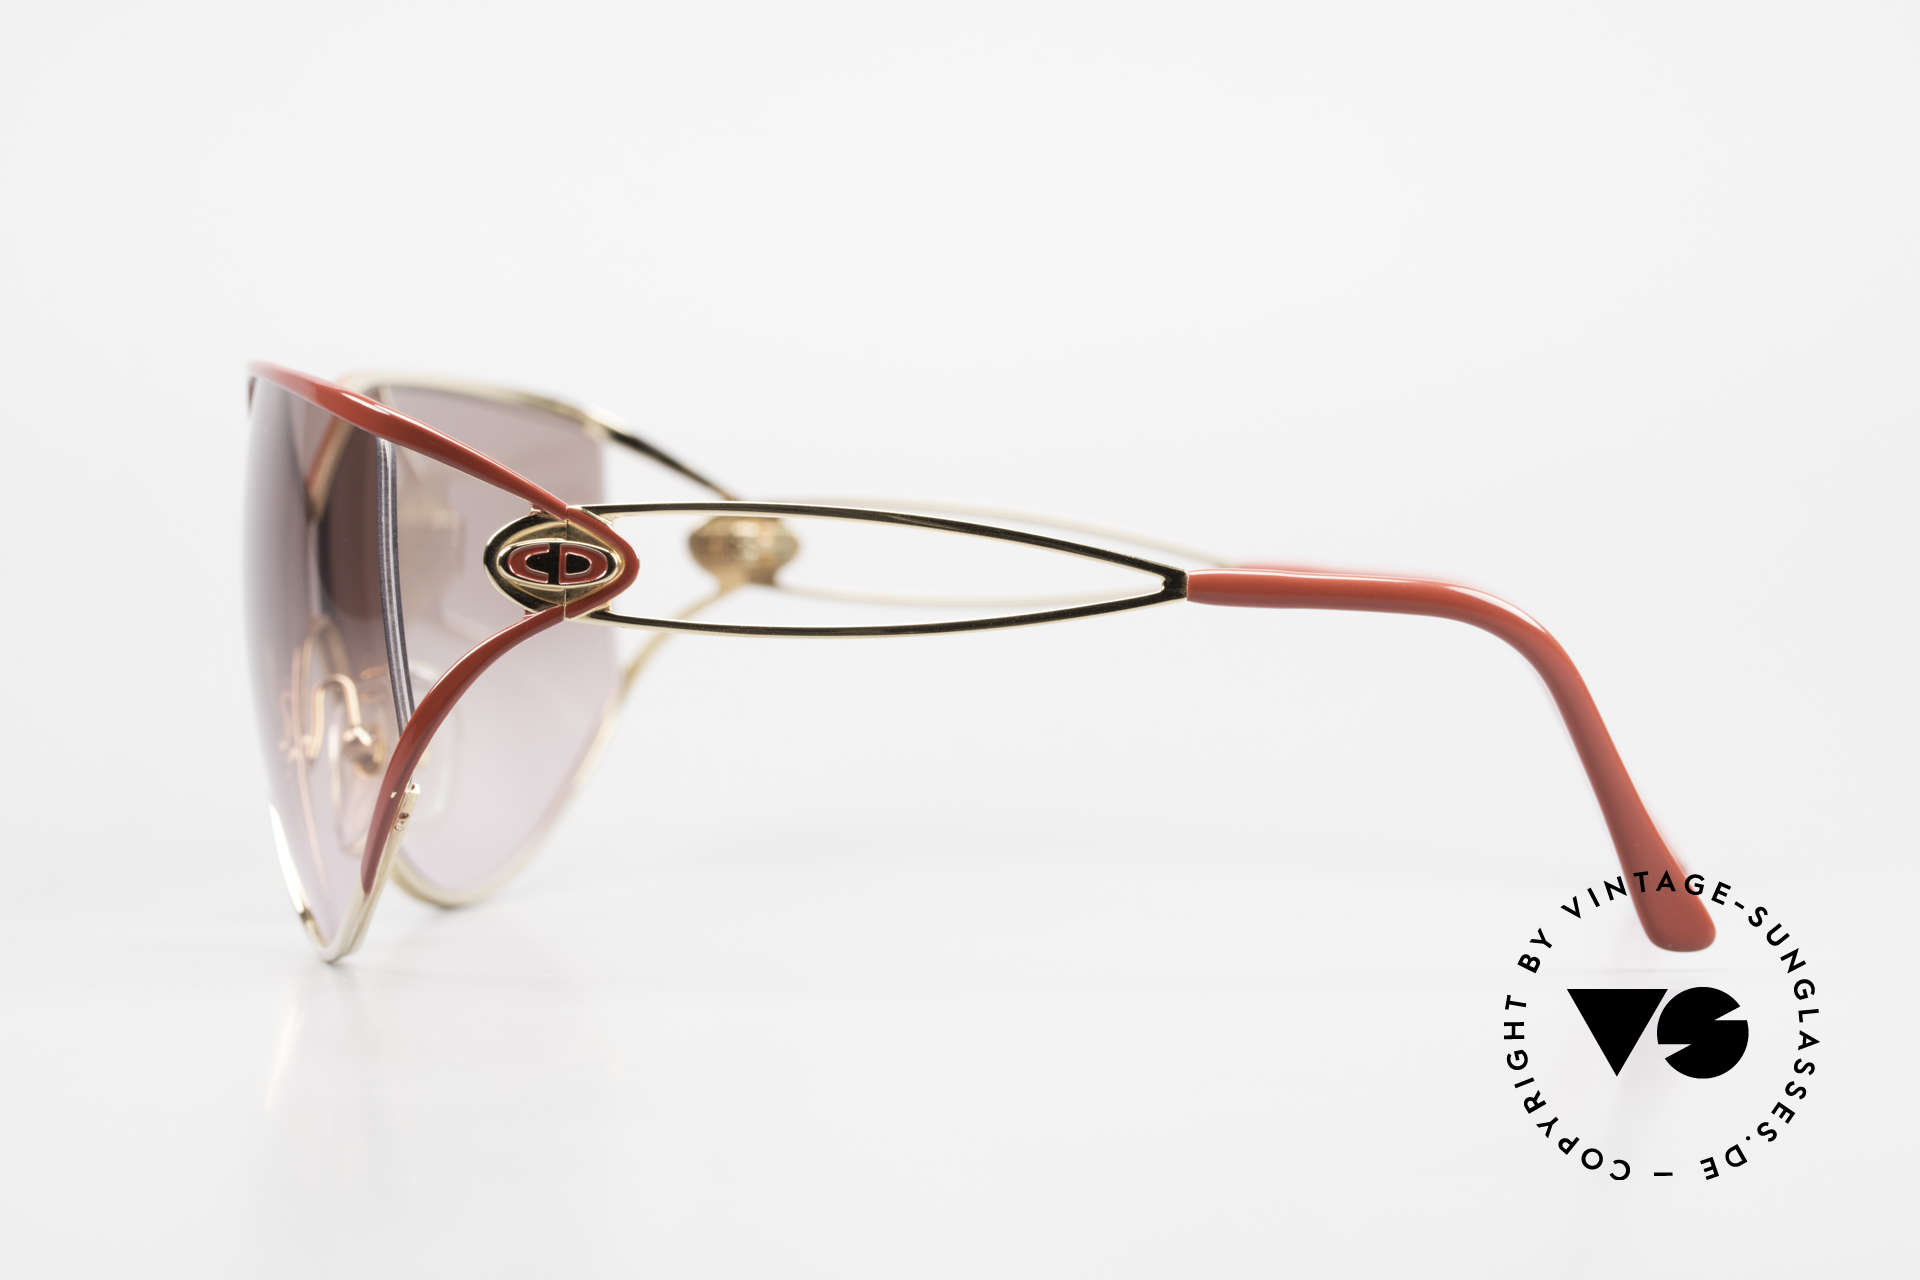 Christian Dior 2345 90s Designer Sunglasses Ladies, NO retro fashion, but an old rarity from 1991, Made for Women